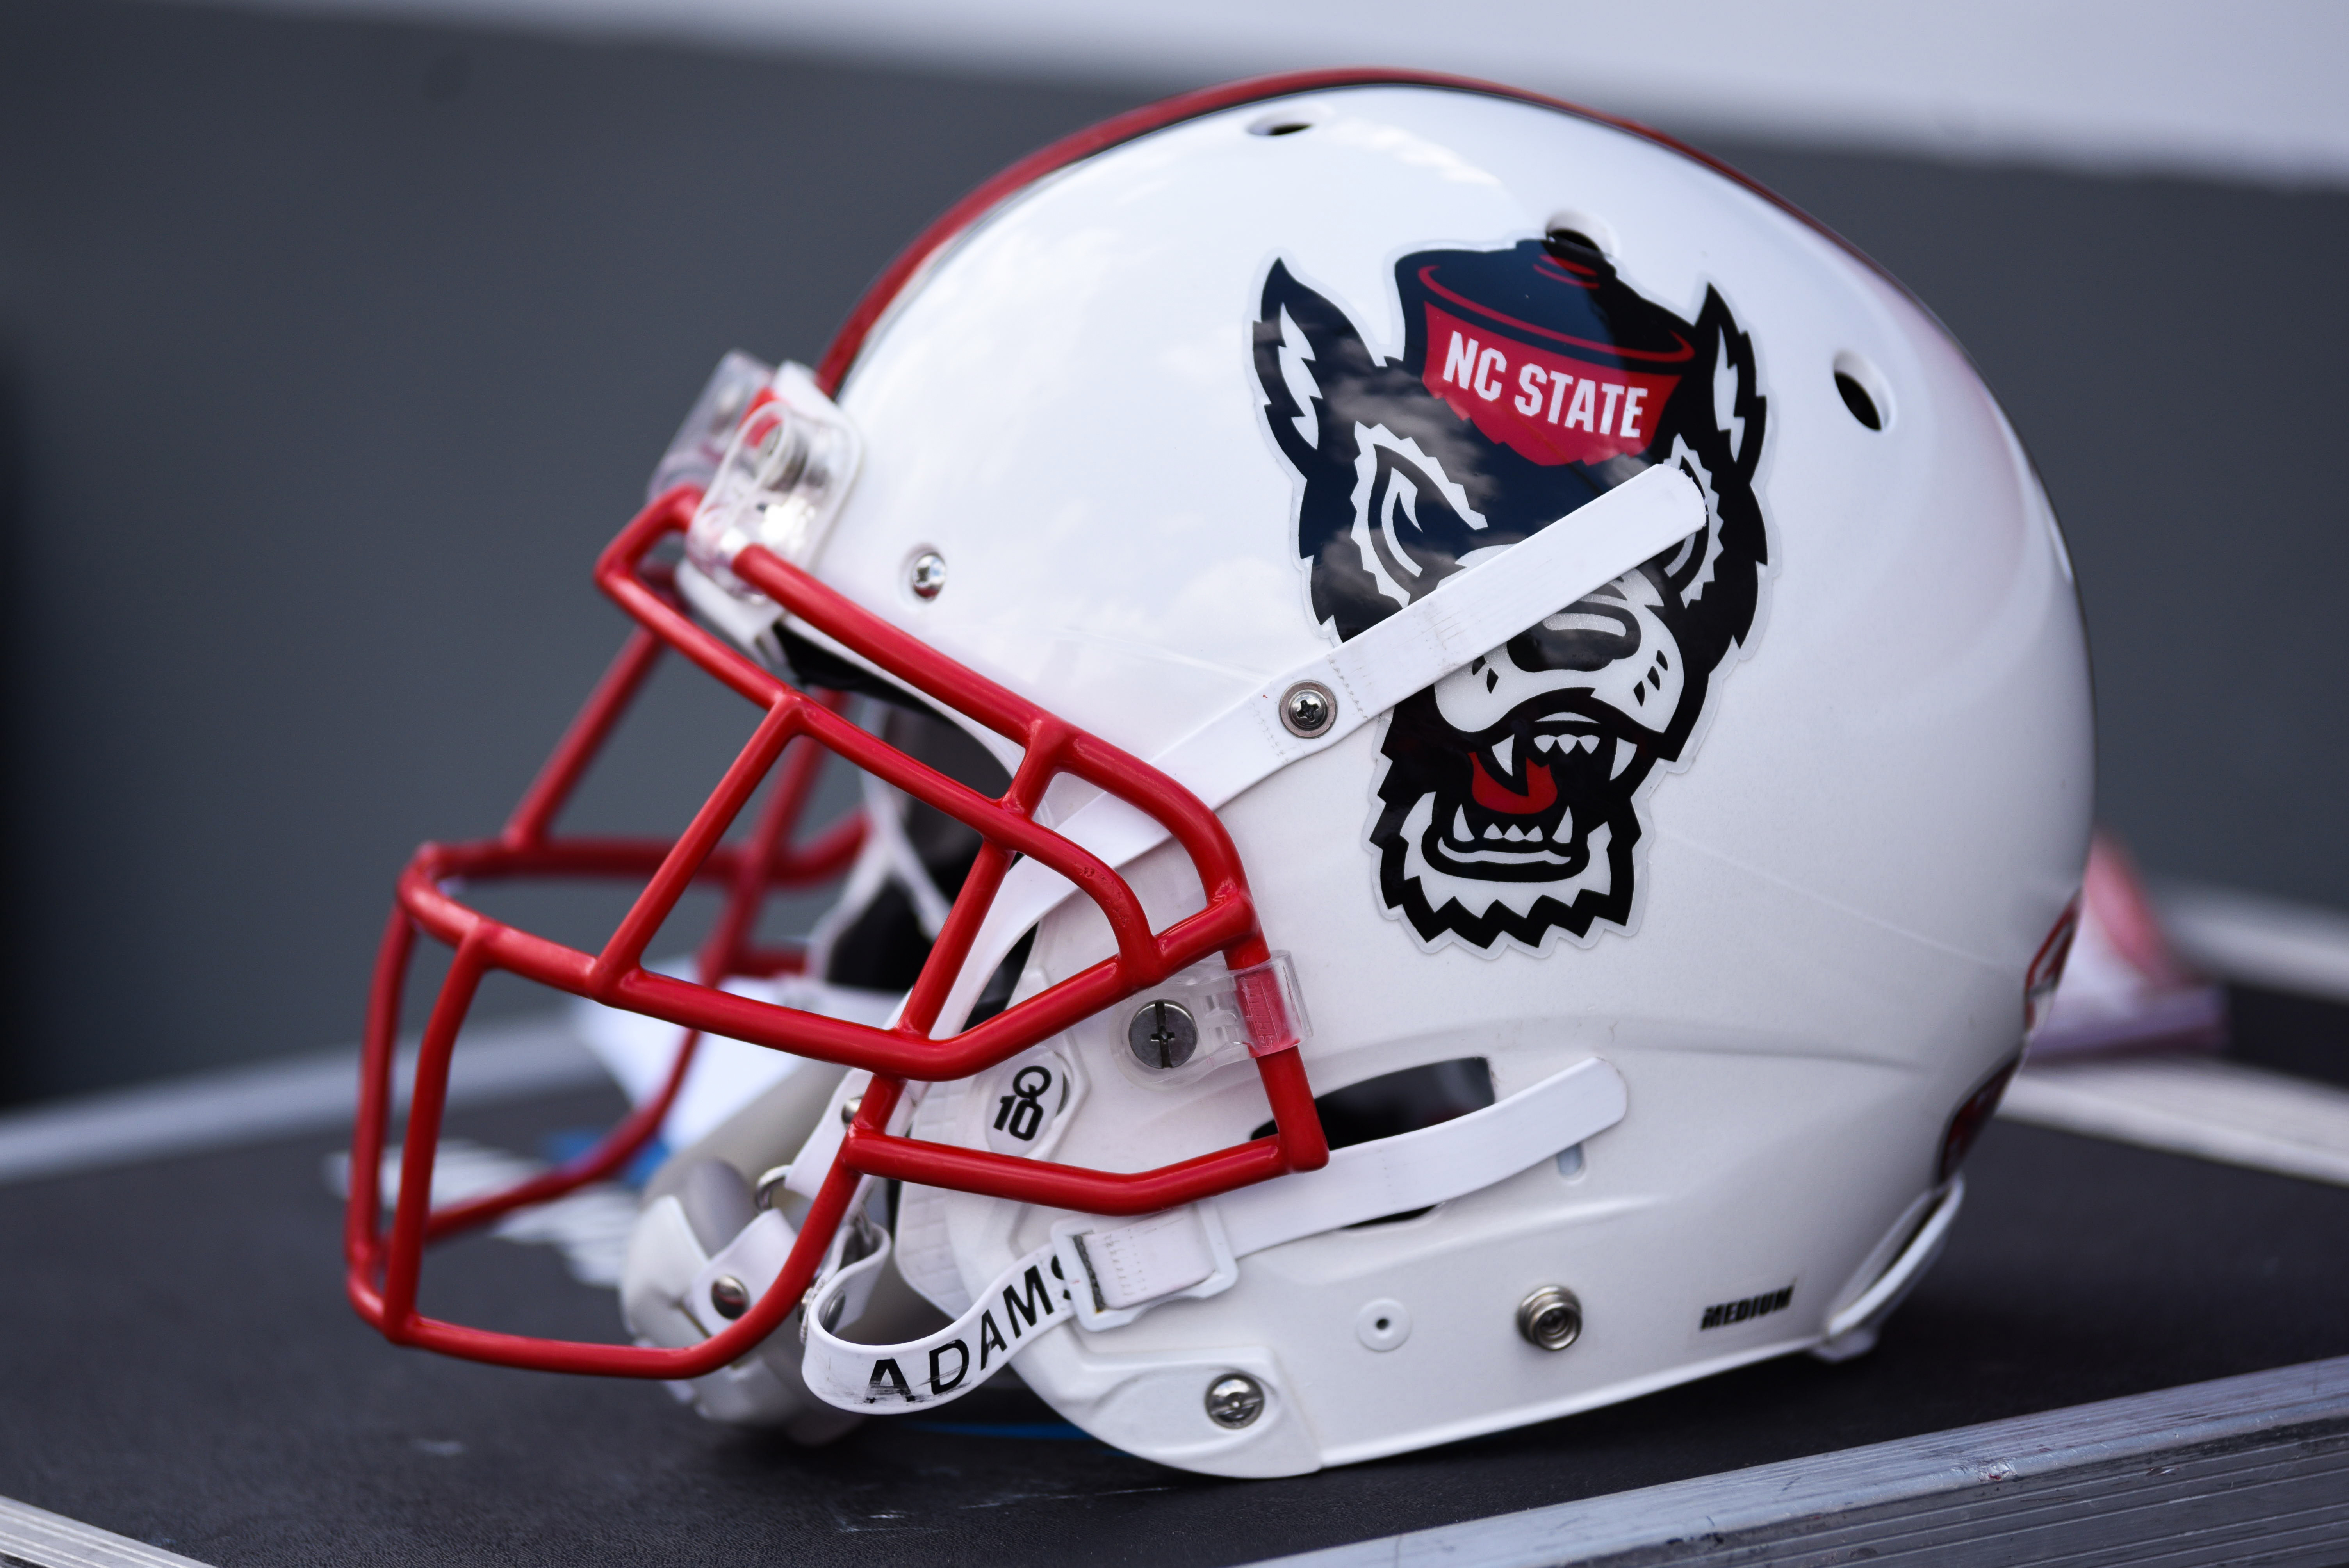 COLLEGE FOOTBALL: SEP 16 Furman at NC State